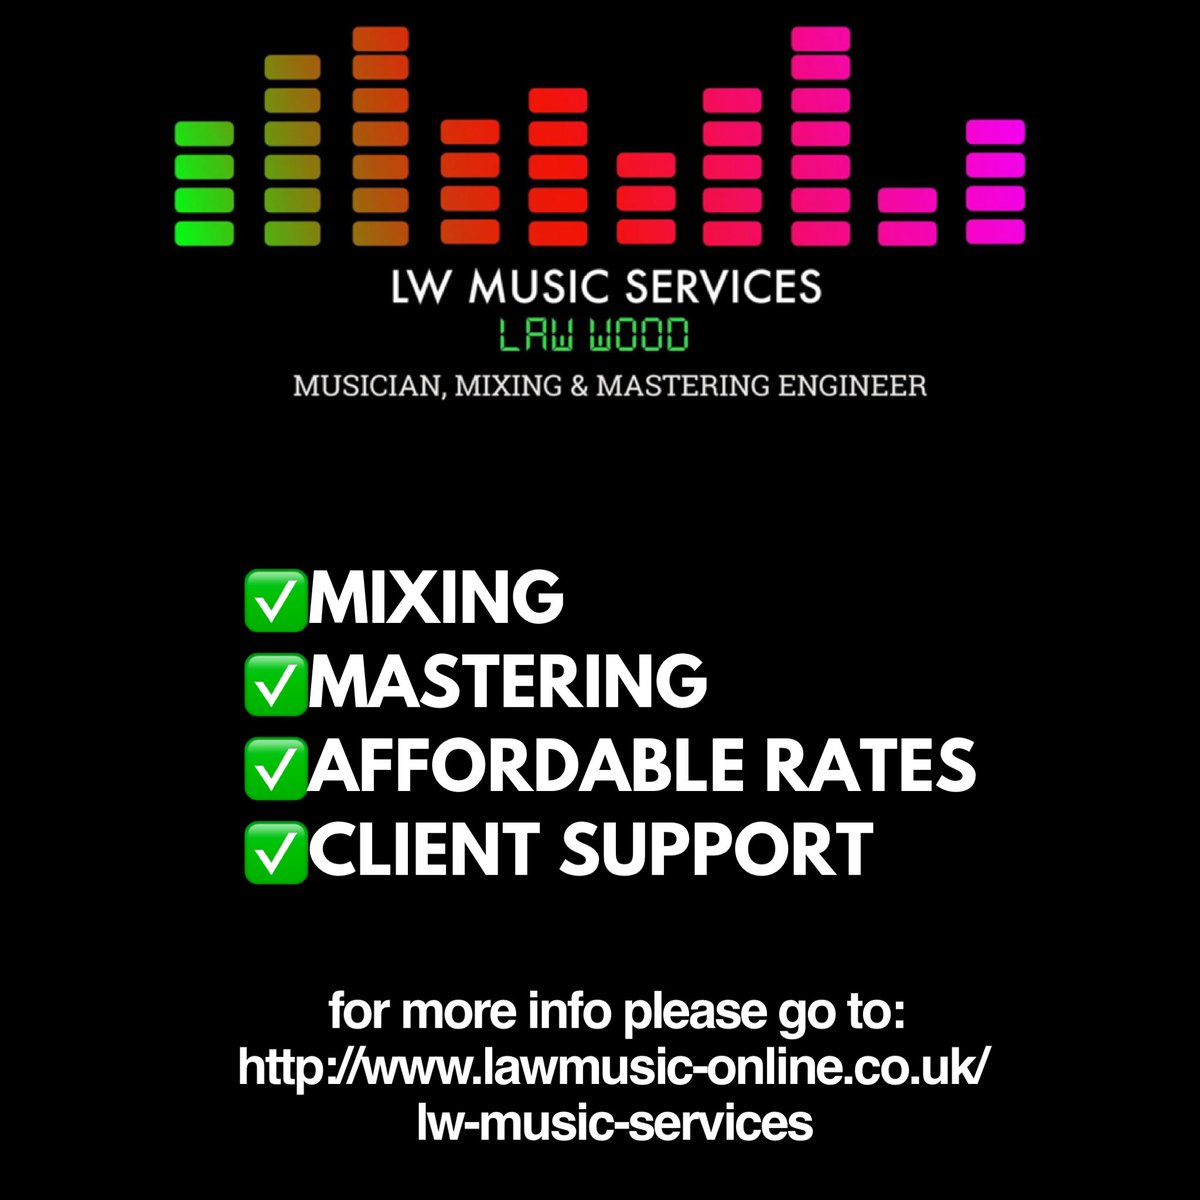 Mixing & Mastering can be affordable http://www.lawmusic-online.co.uk/lw-music-services… #mixing #mastering #musicpic.twitter.com/7Pj73cM5N2